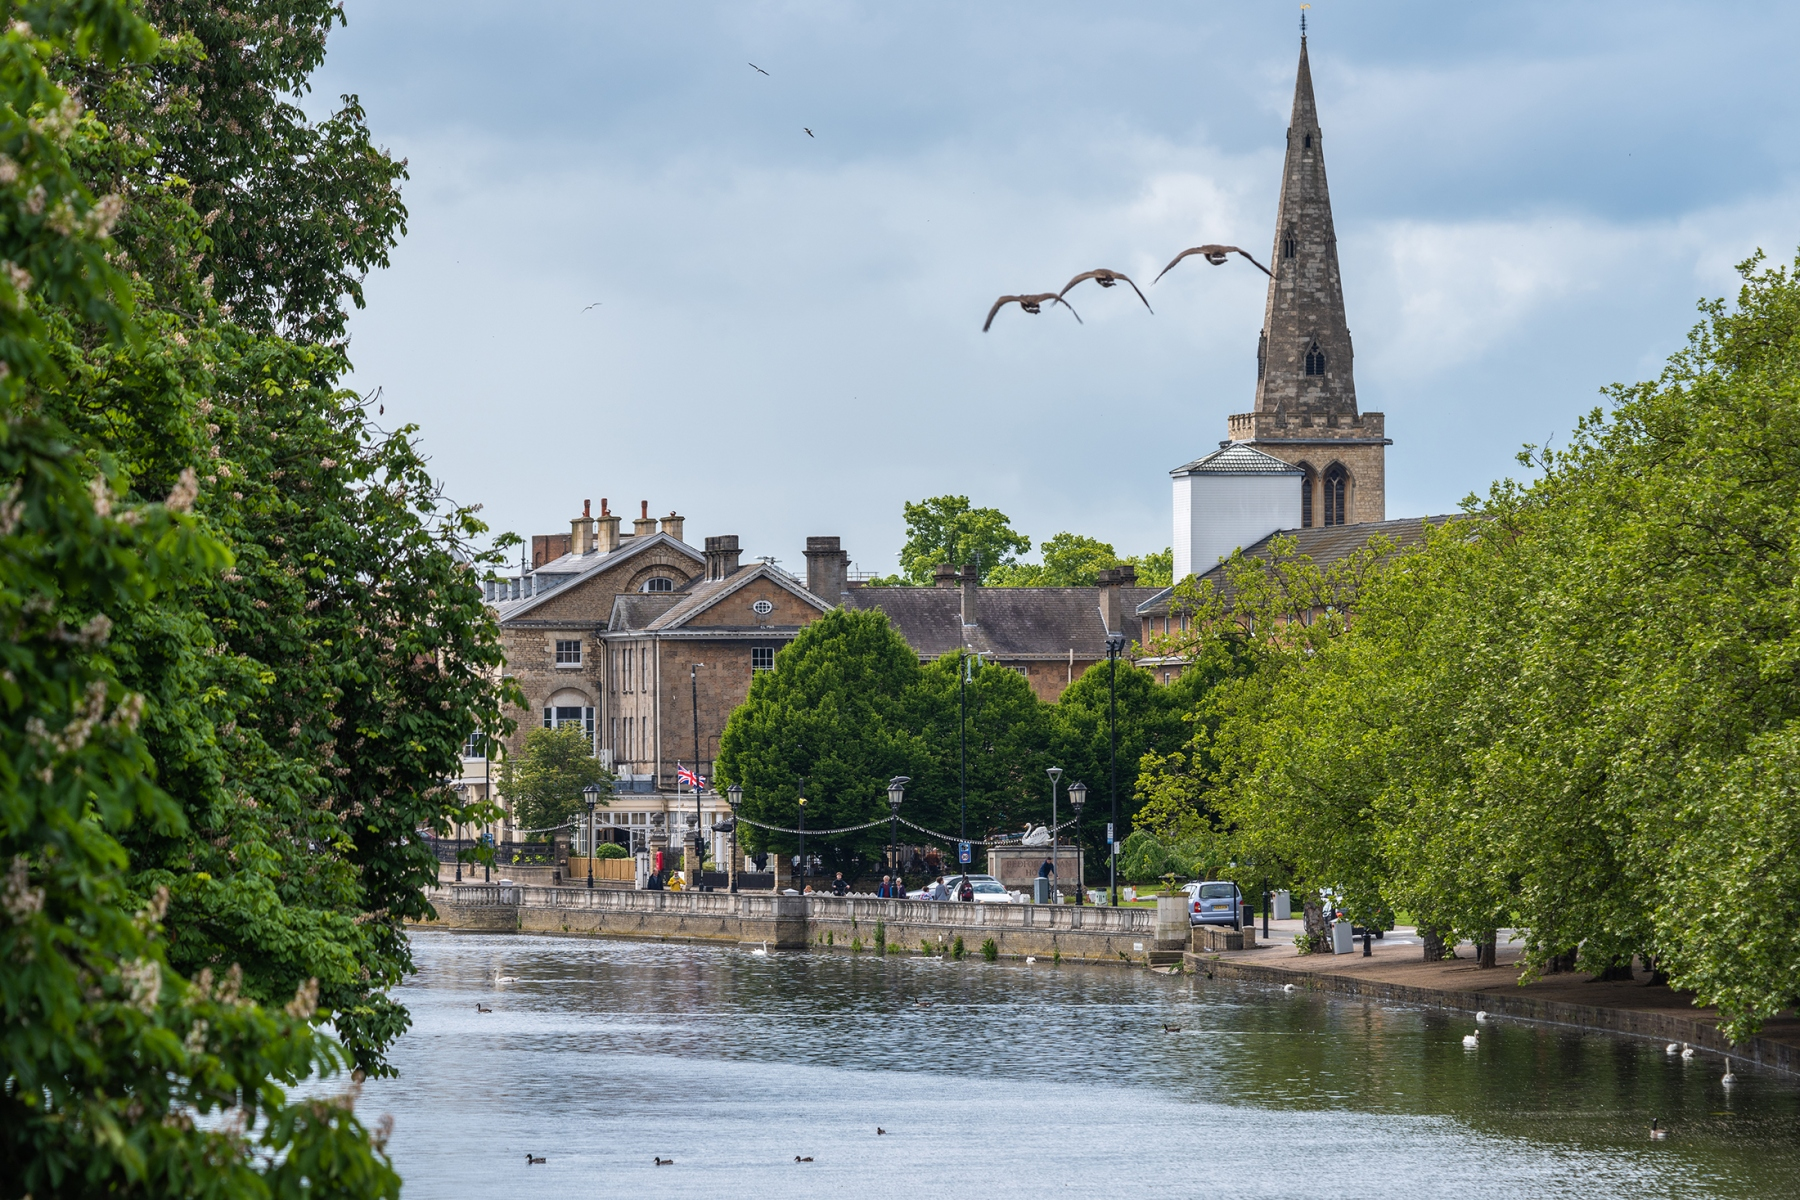 View from Embankment Bridge of River Great Ouse, Bedford